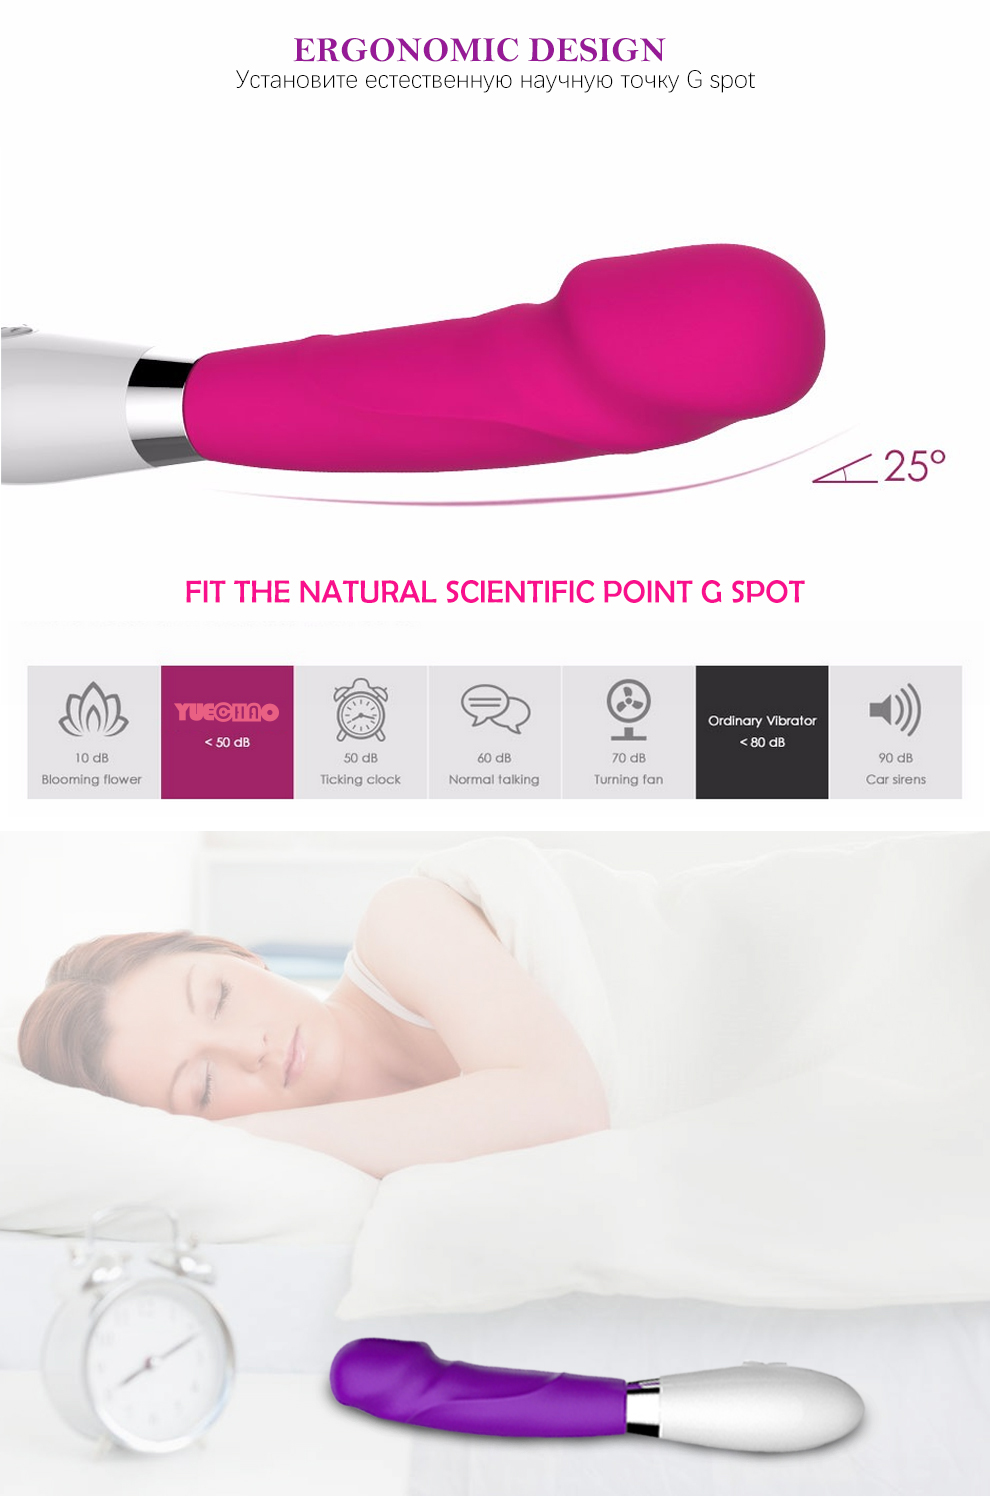 YUECHAO Powerful 12 Speeds Frequency Vibrators For Women G-spot Clitoris Stimulation Vibrating Stick for Couple Sex Toys 6